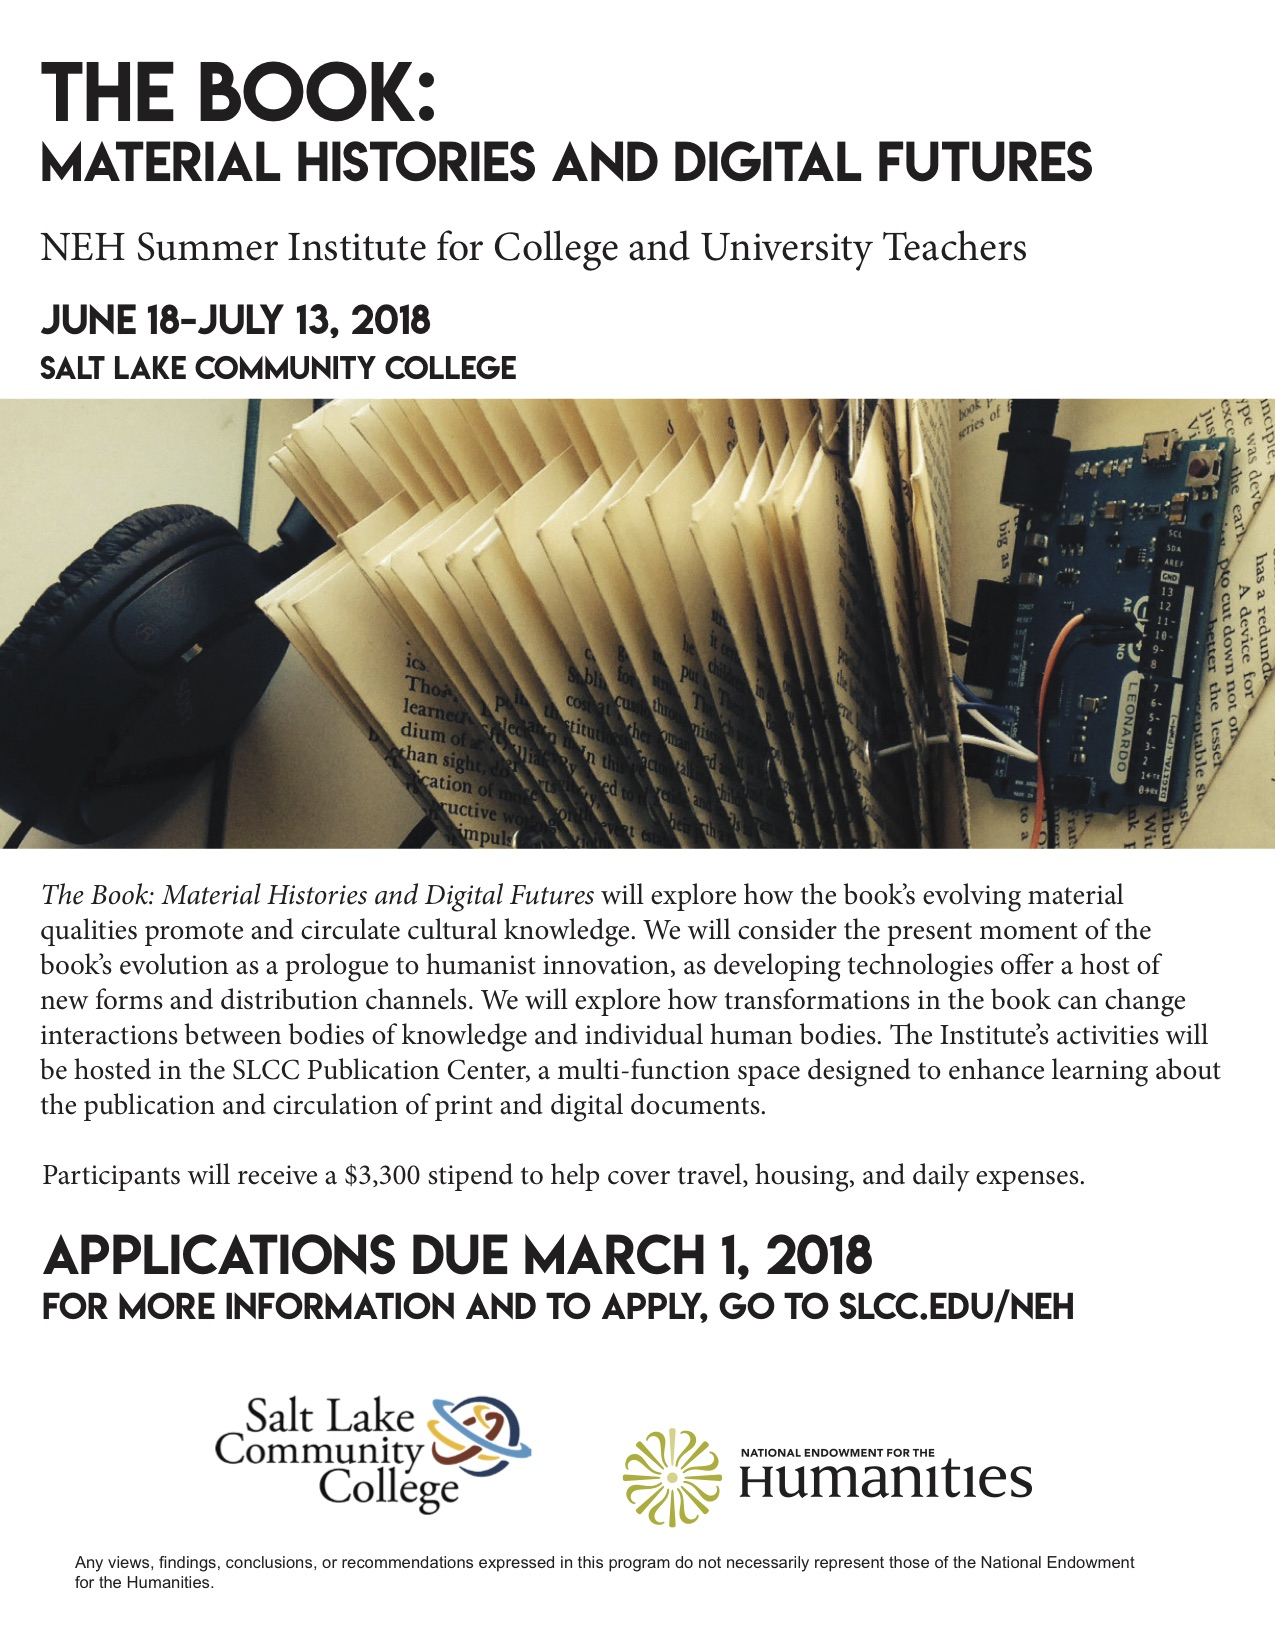 SLCC NEH Institute Flier